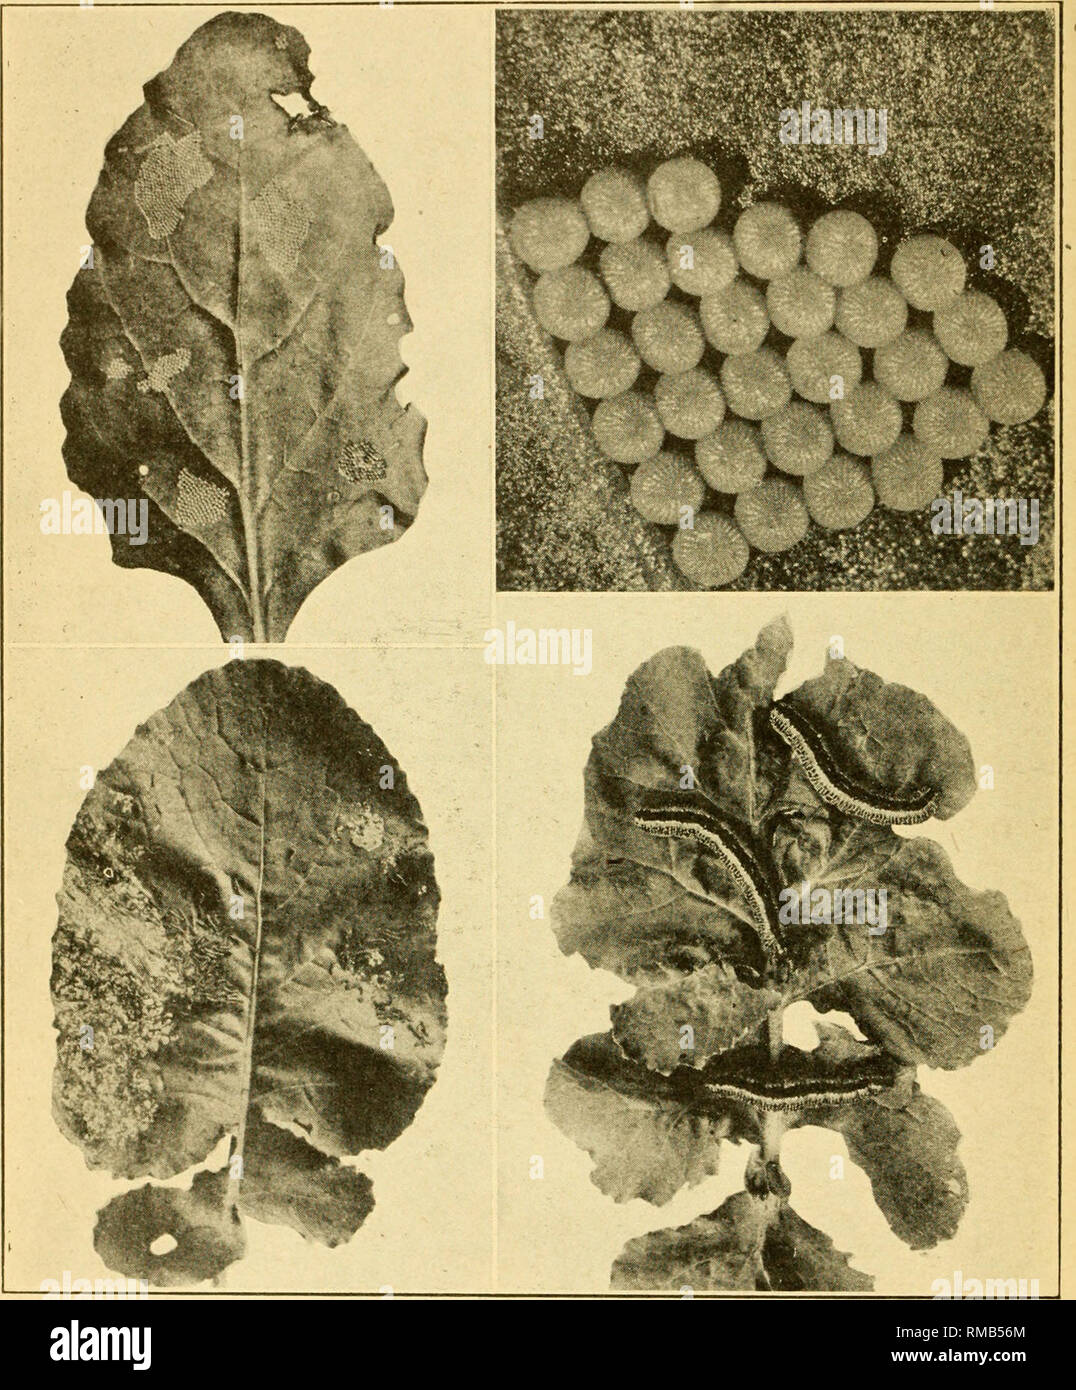 . Annual report. Entomological Society of Ontario; Insect pests; Insects -- Ontario Periodicals. 98 THE REPORT OF THE No. 36. 3 4 Zebra Caterpillar {Ceramica picta). 1. Turnip leaf with egg masses attached. 2. Eggs greatly enlarged. 3. Newy hatched larvae on turnip leaf. 4. Mature larvae on turnip leaf.. Please note that these images are extracted from scanned page images that may have been digitally enhanced for readability - coloration and appearance of these illustrations may not perfectly resemble the original work.. Entomological Society of Ontario; Ontario. Dept. of Agriculture. Toronto, - Stock Image